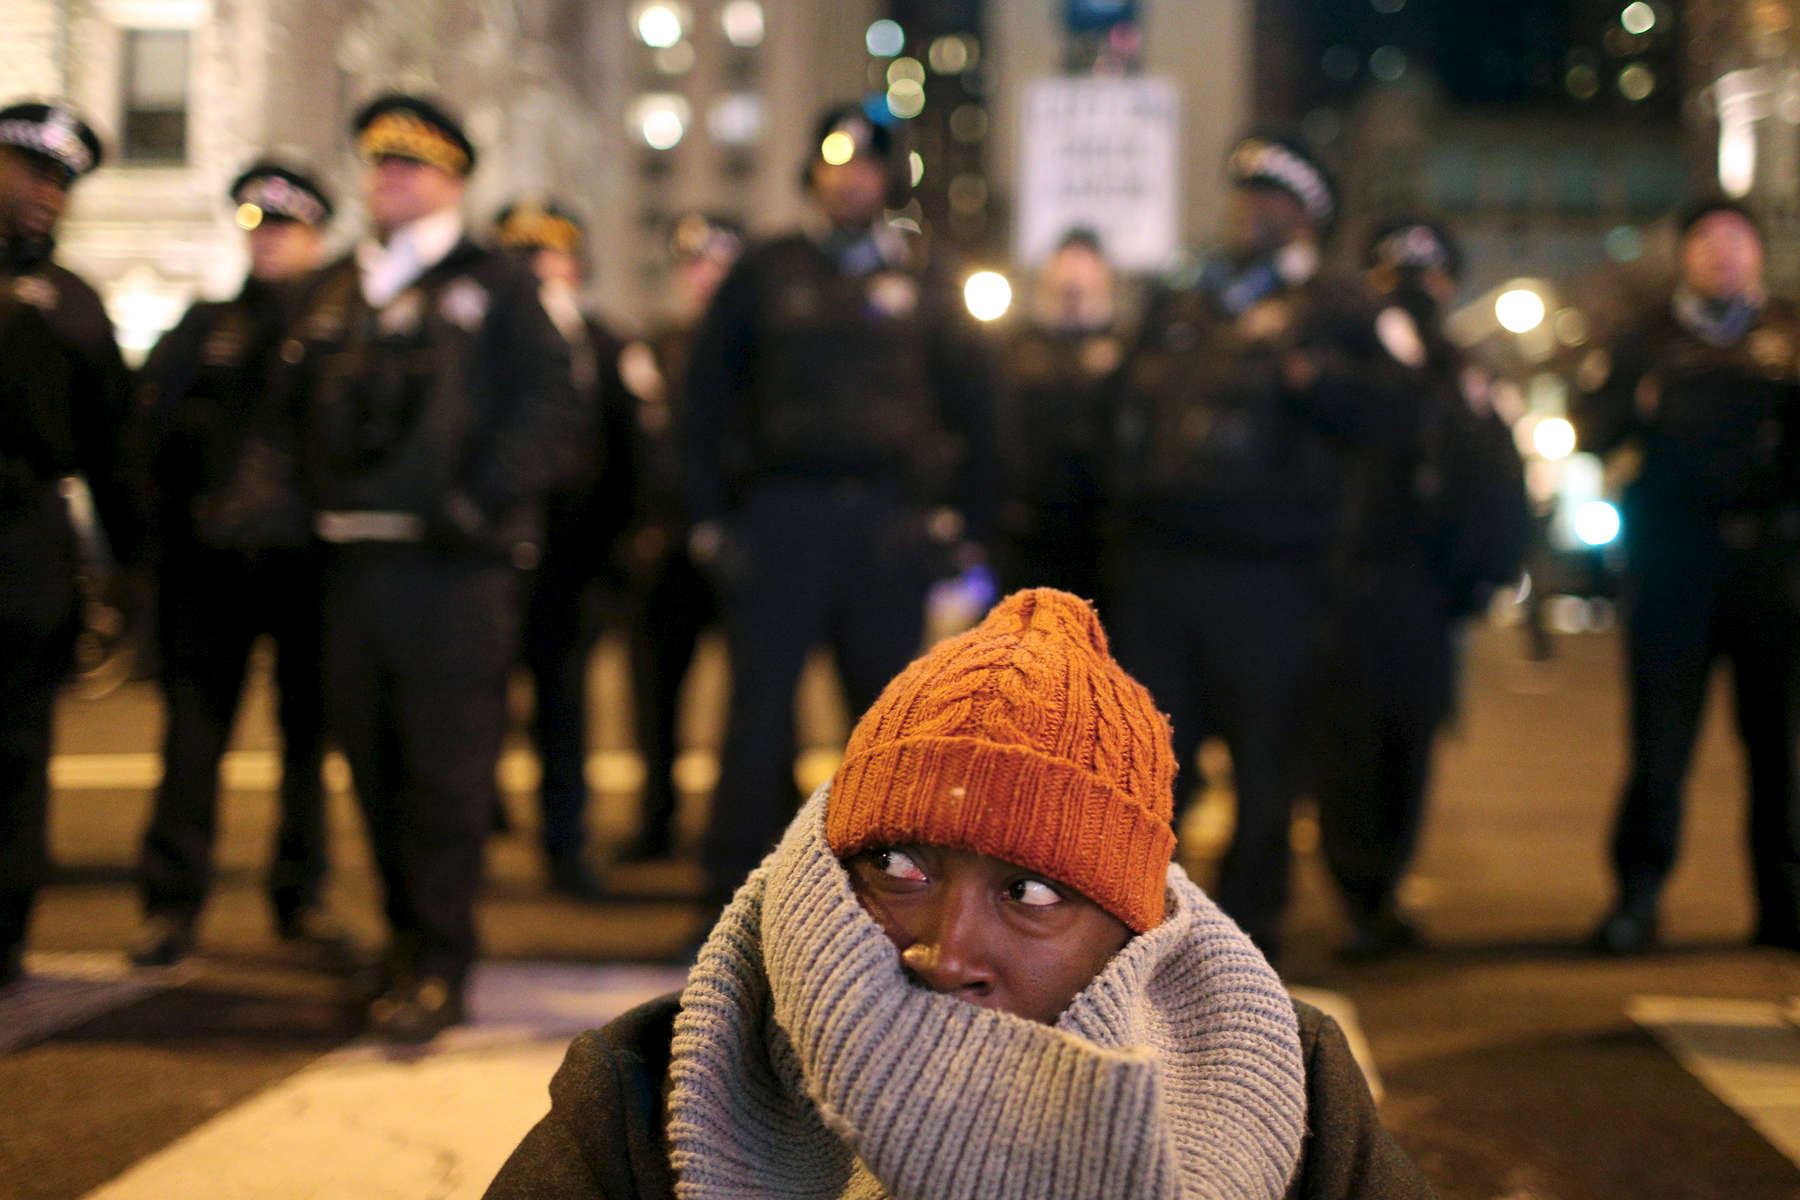 A protester lays in the roadway shutting down traffic in support of police shooting victim Laquan McDonald during the Black Friday shopping rush on Michigan Avenue in Chicago. Days later store staff and managers said that Black Friday sales on the Magnificent Mile were 25 percent to 50 percent below projections.